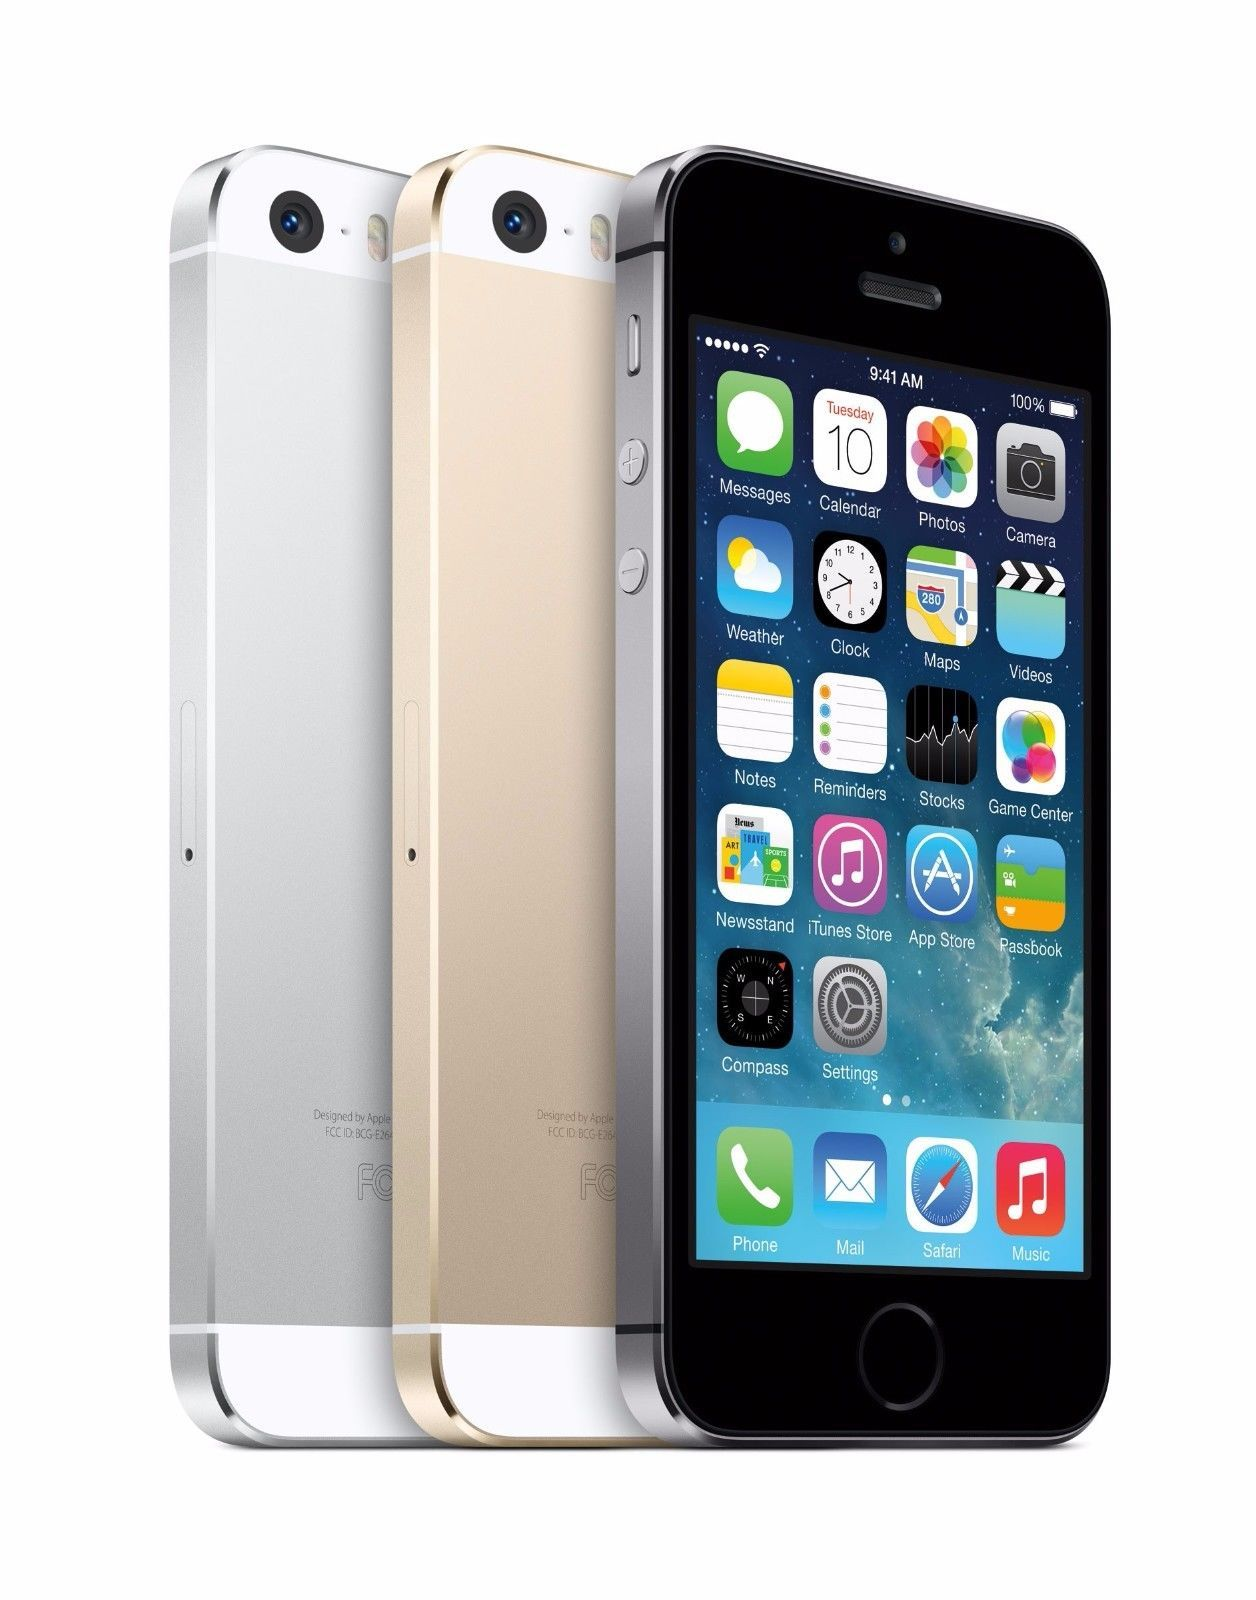 iphone apple ios Apple iPhone 5s Smartphone 16GB Choose AT&T or GSM Unlocked Gold Black 4g 109 00 Item specifics Condition Seller refurbished An